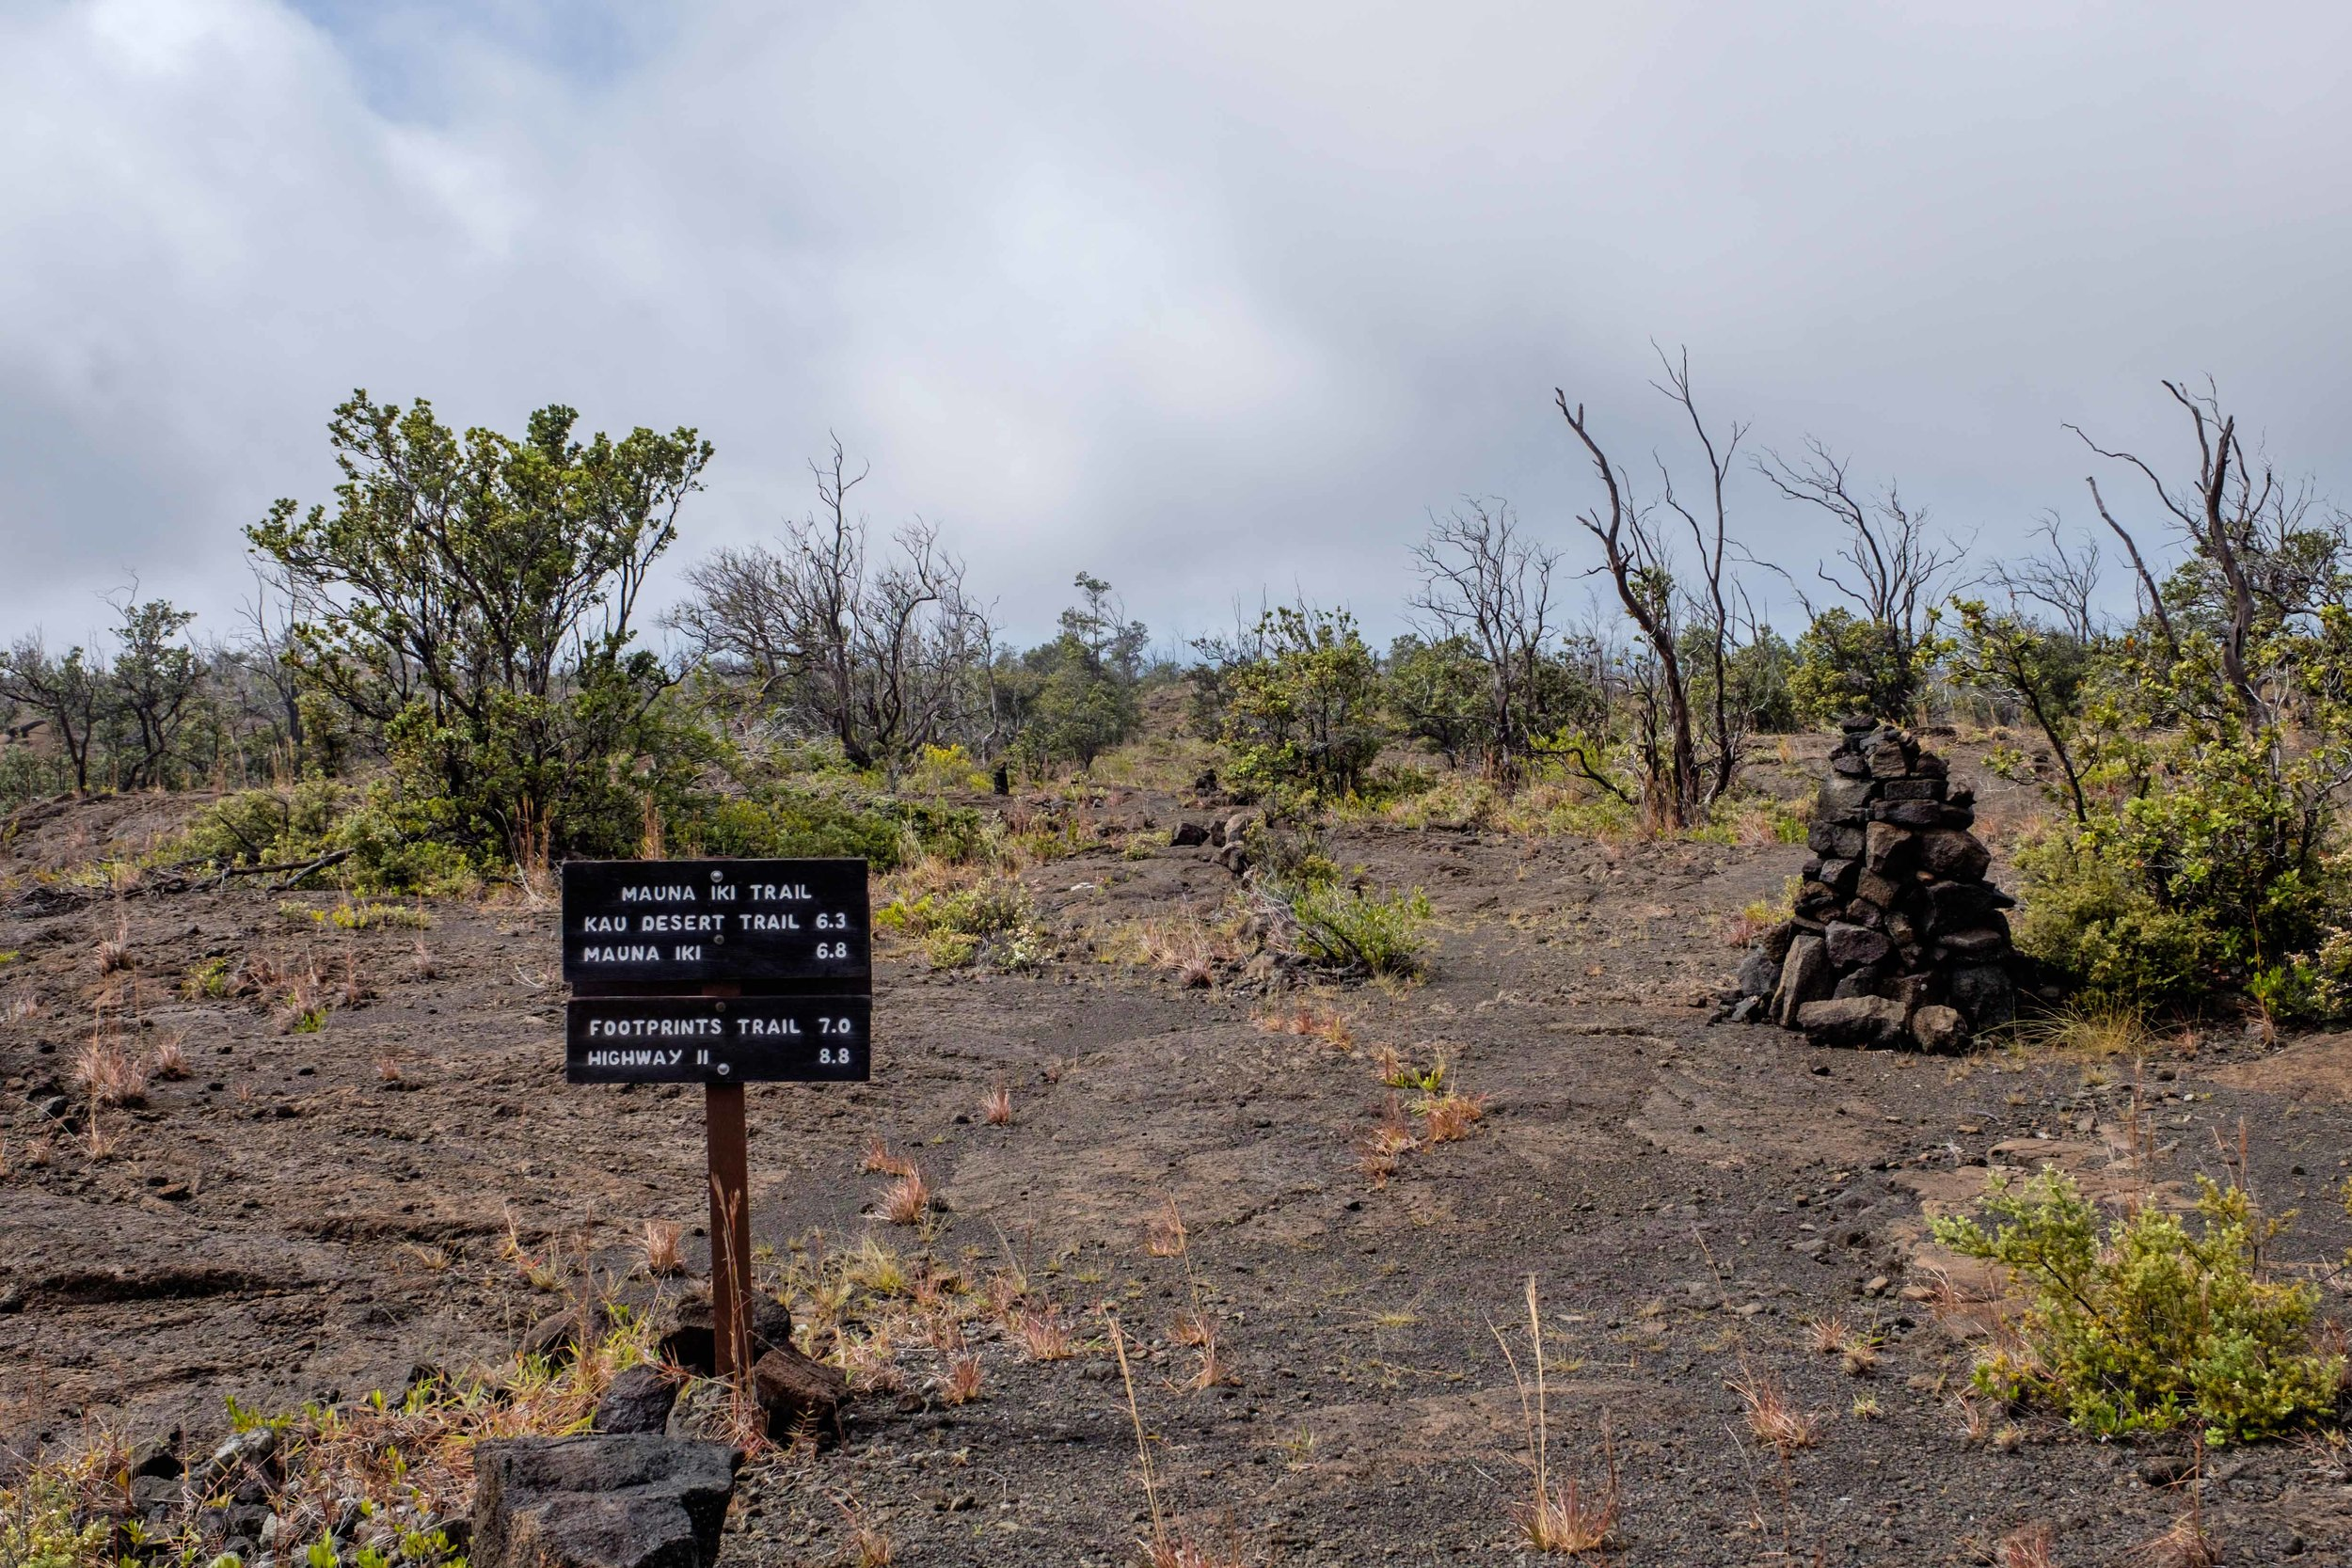 One of our favorite activities in the park was hiking the Kilauea Iki trail.